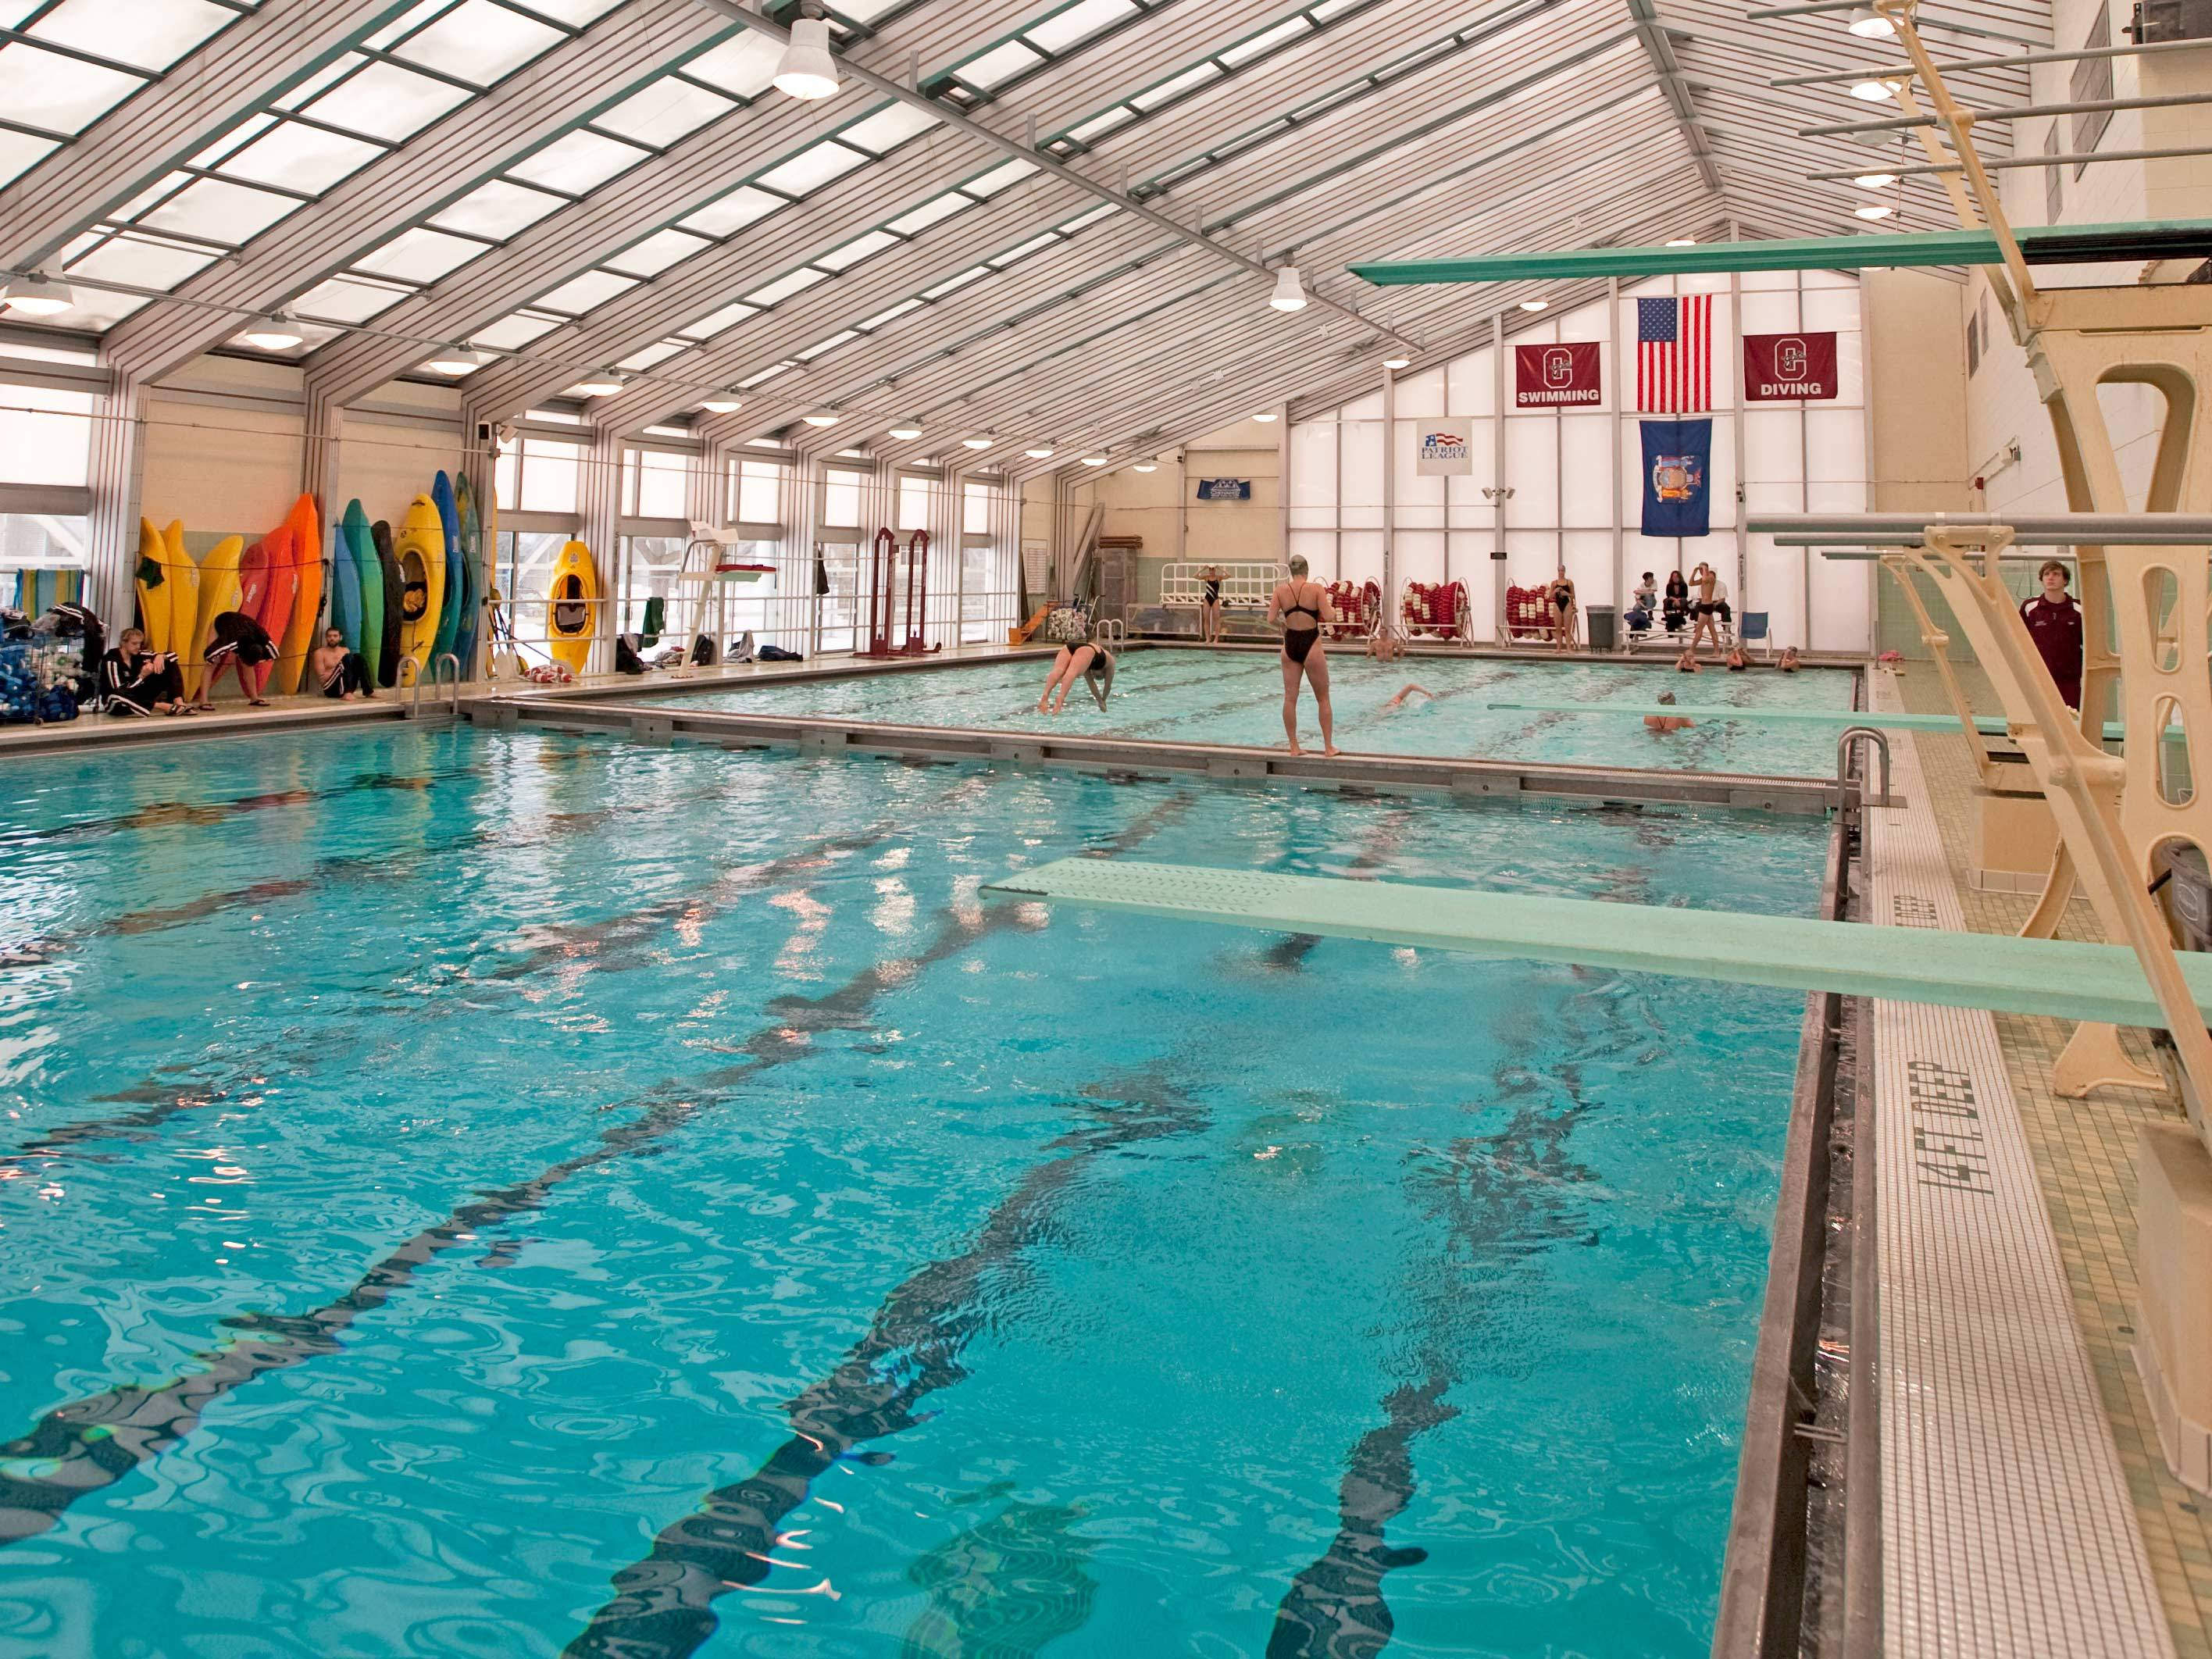 The pool in Lineberry Natatorium at Colgate University